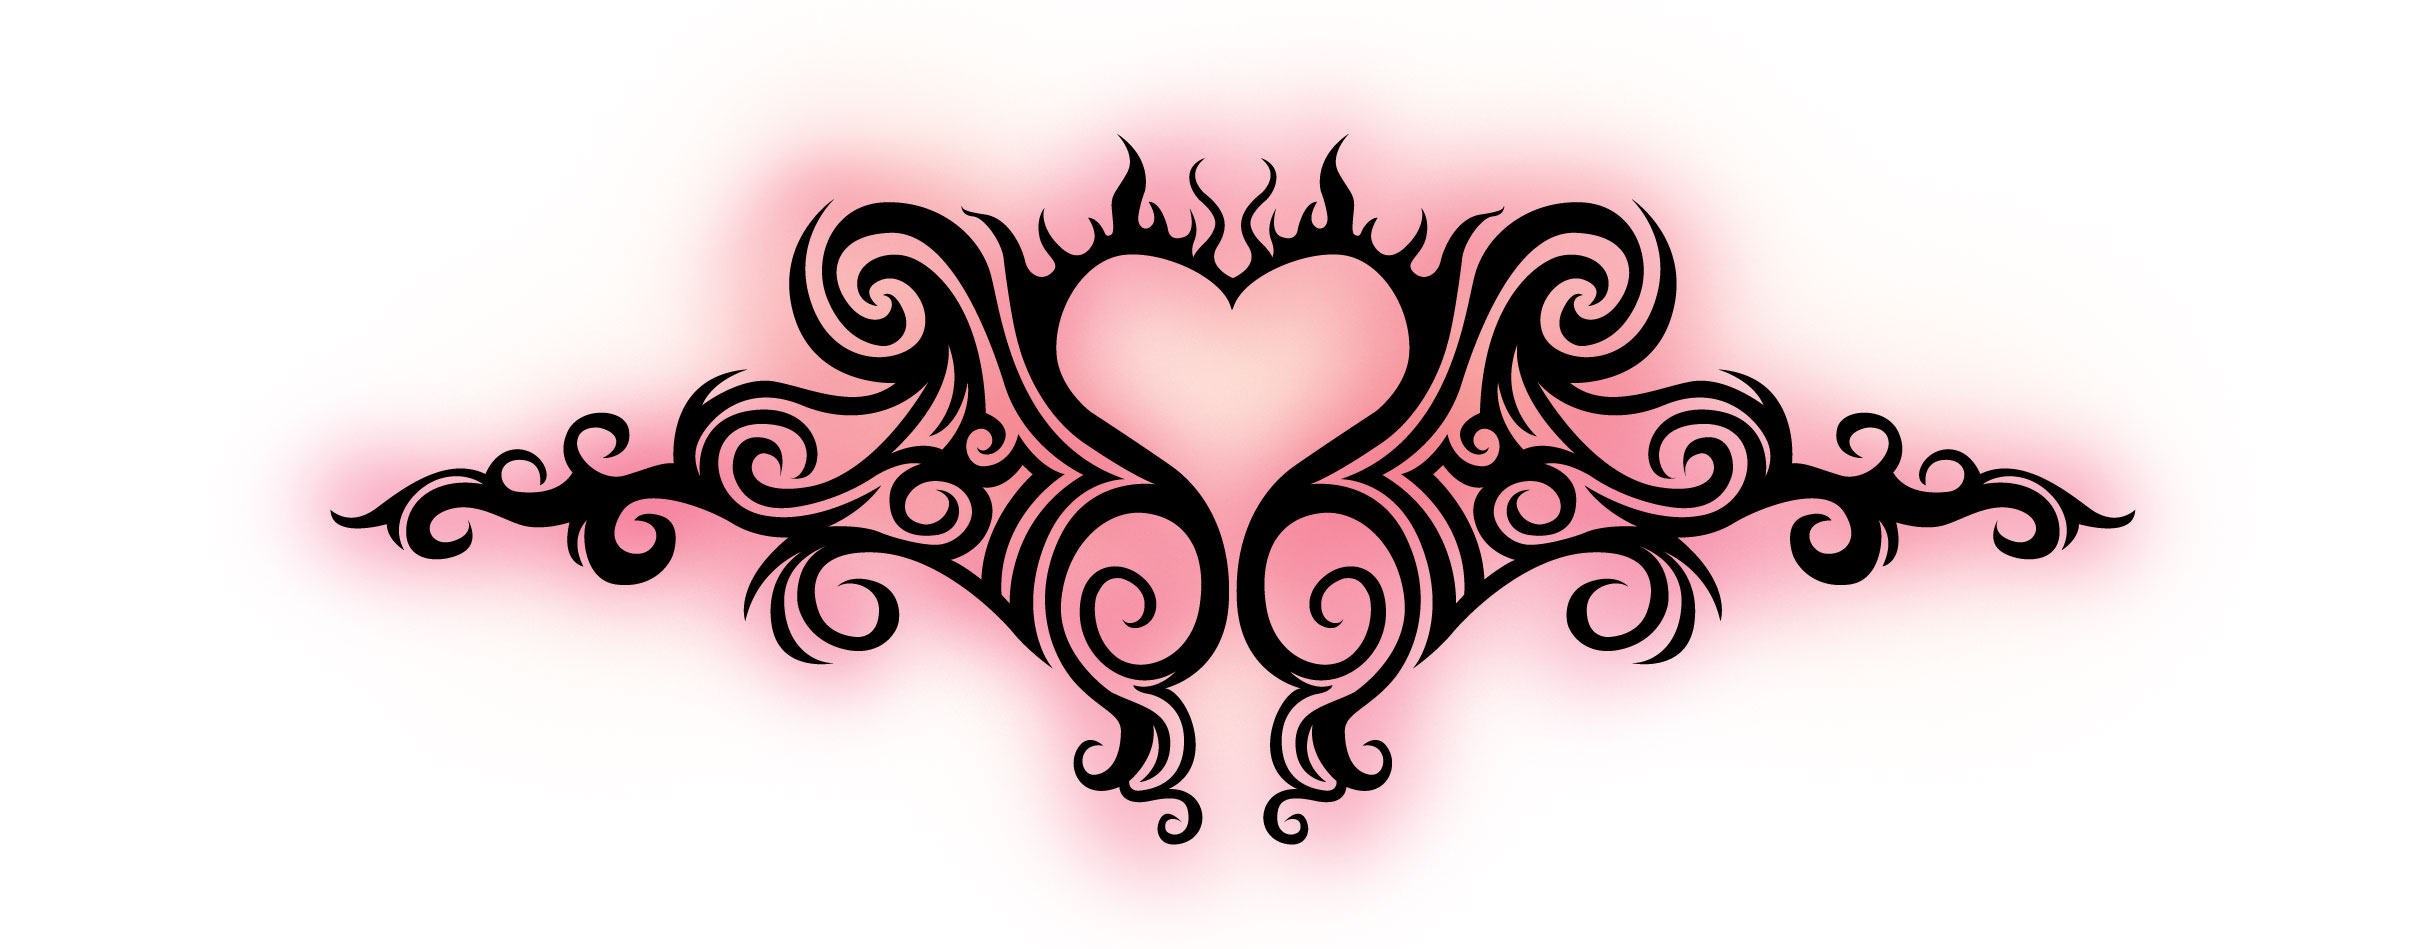 Outstanding Tribal Heart Tattoo Sample photo - 1